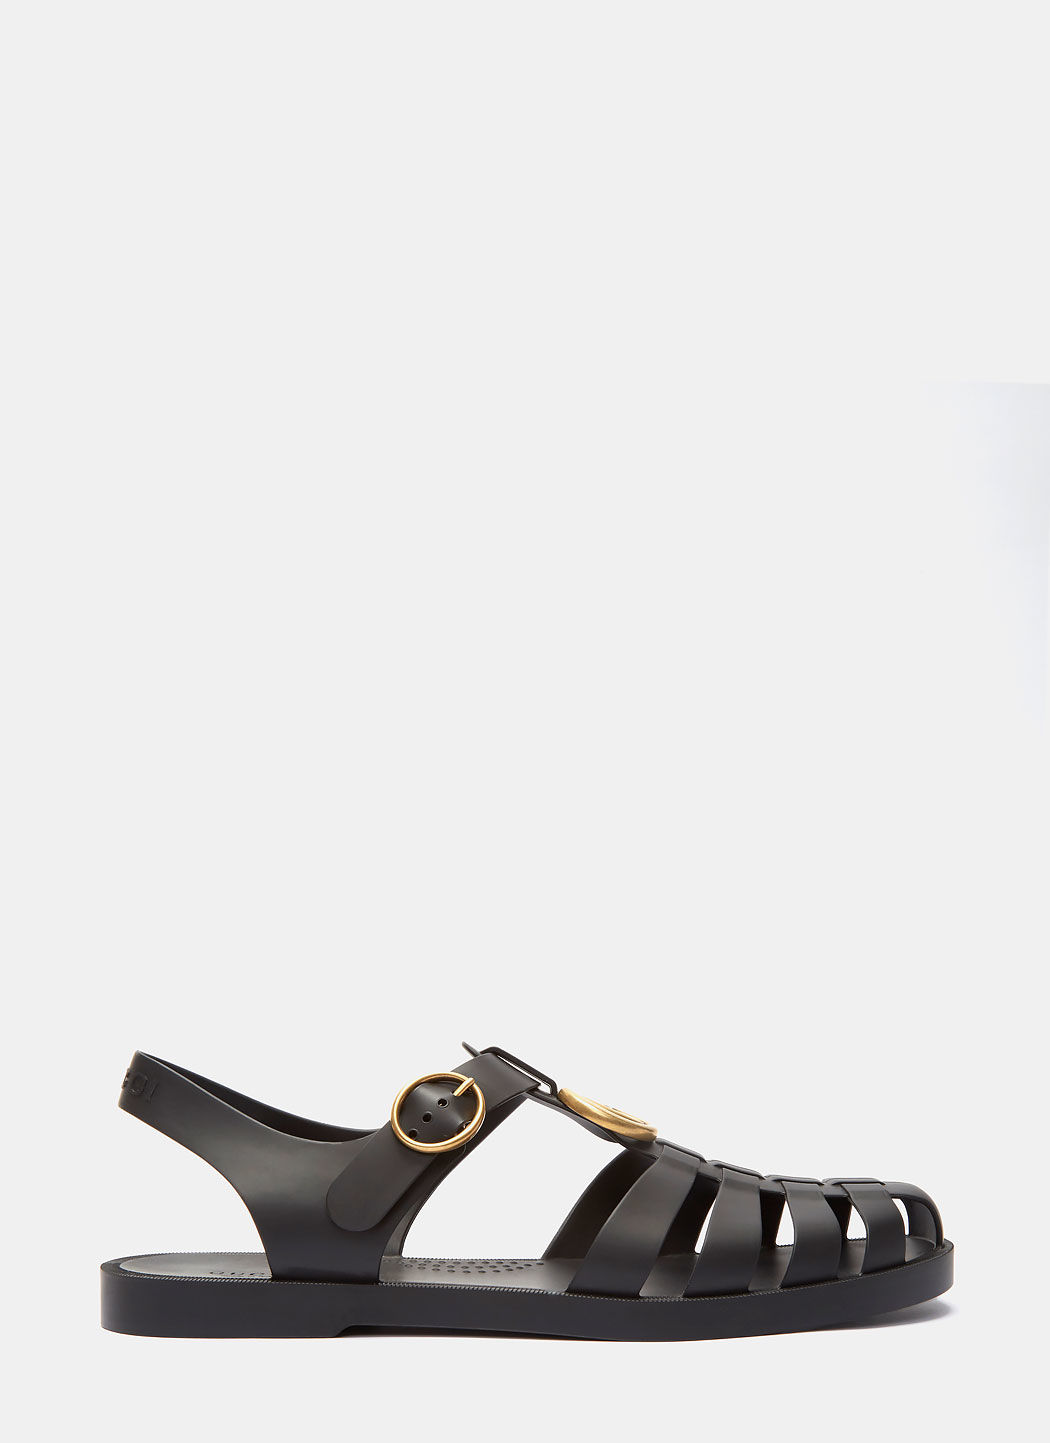 GUCCI TIGER HEAD RUBBER BUCKLE SANDALS IN BLACK